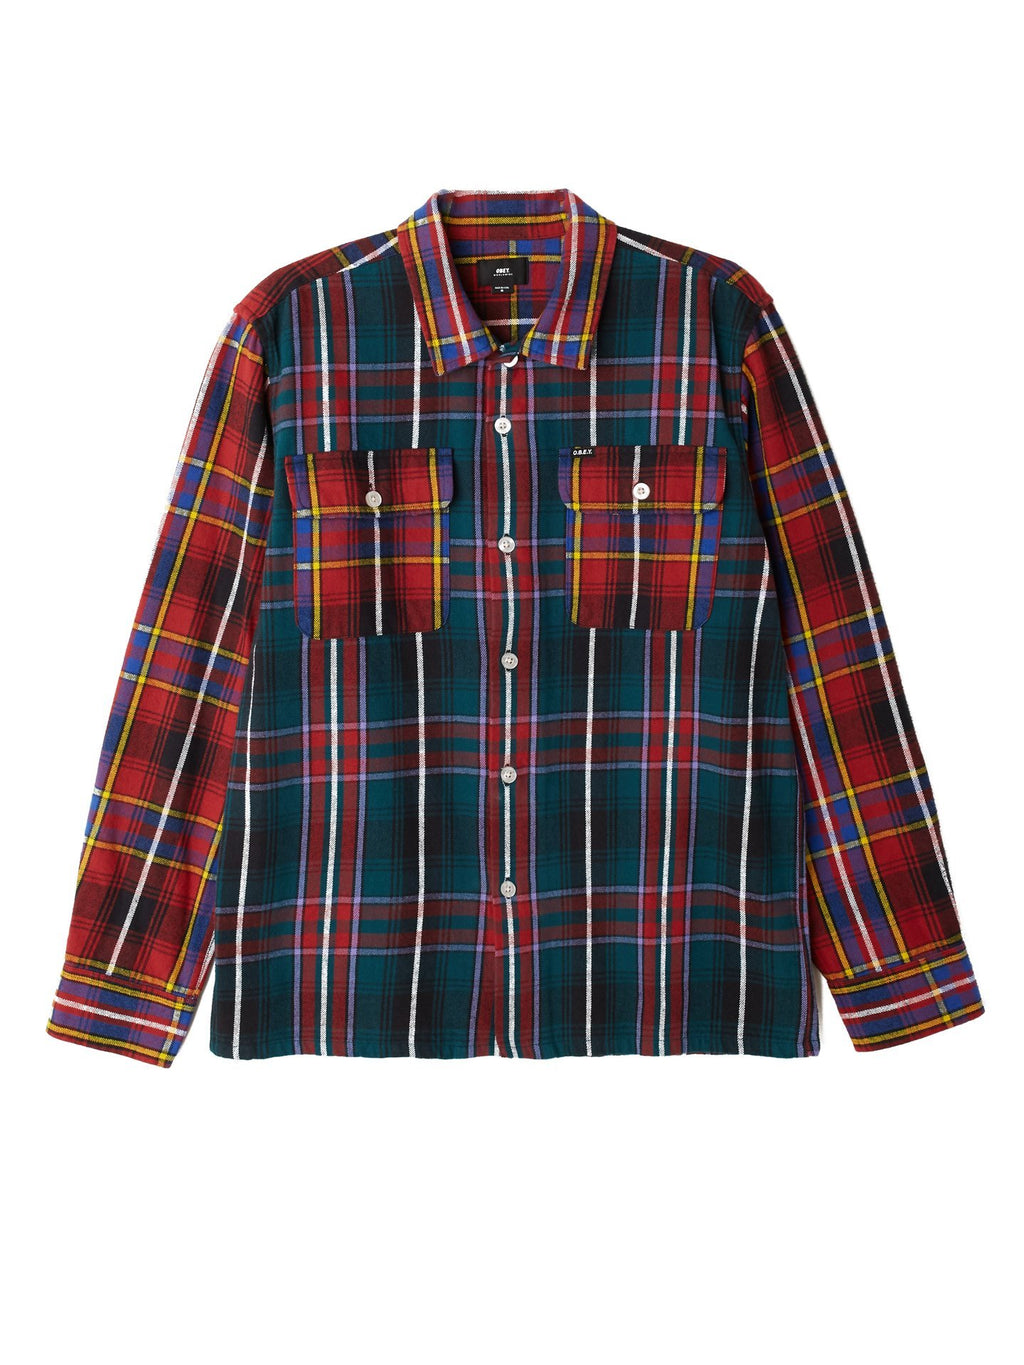 Obey - Casual Woven Flannel - Deep Teal Multi - Guyz